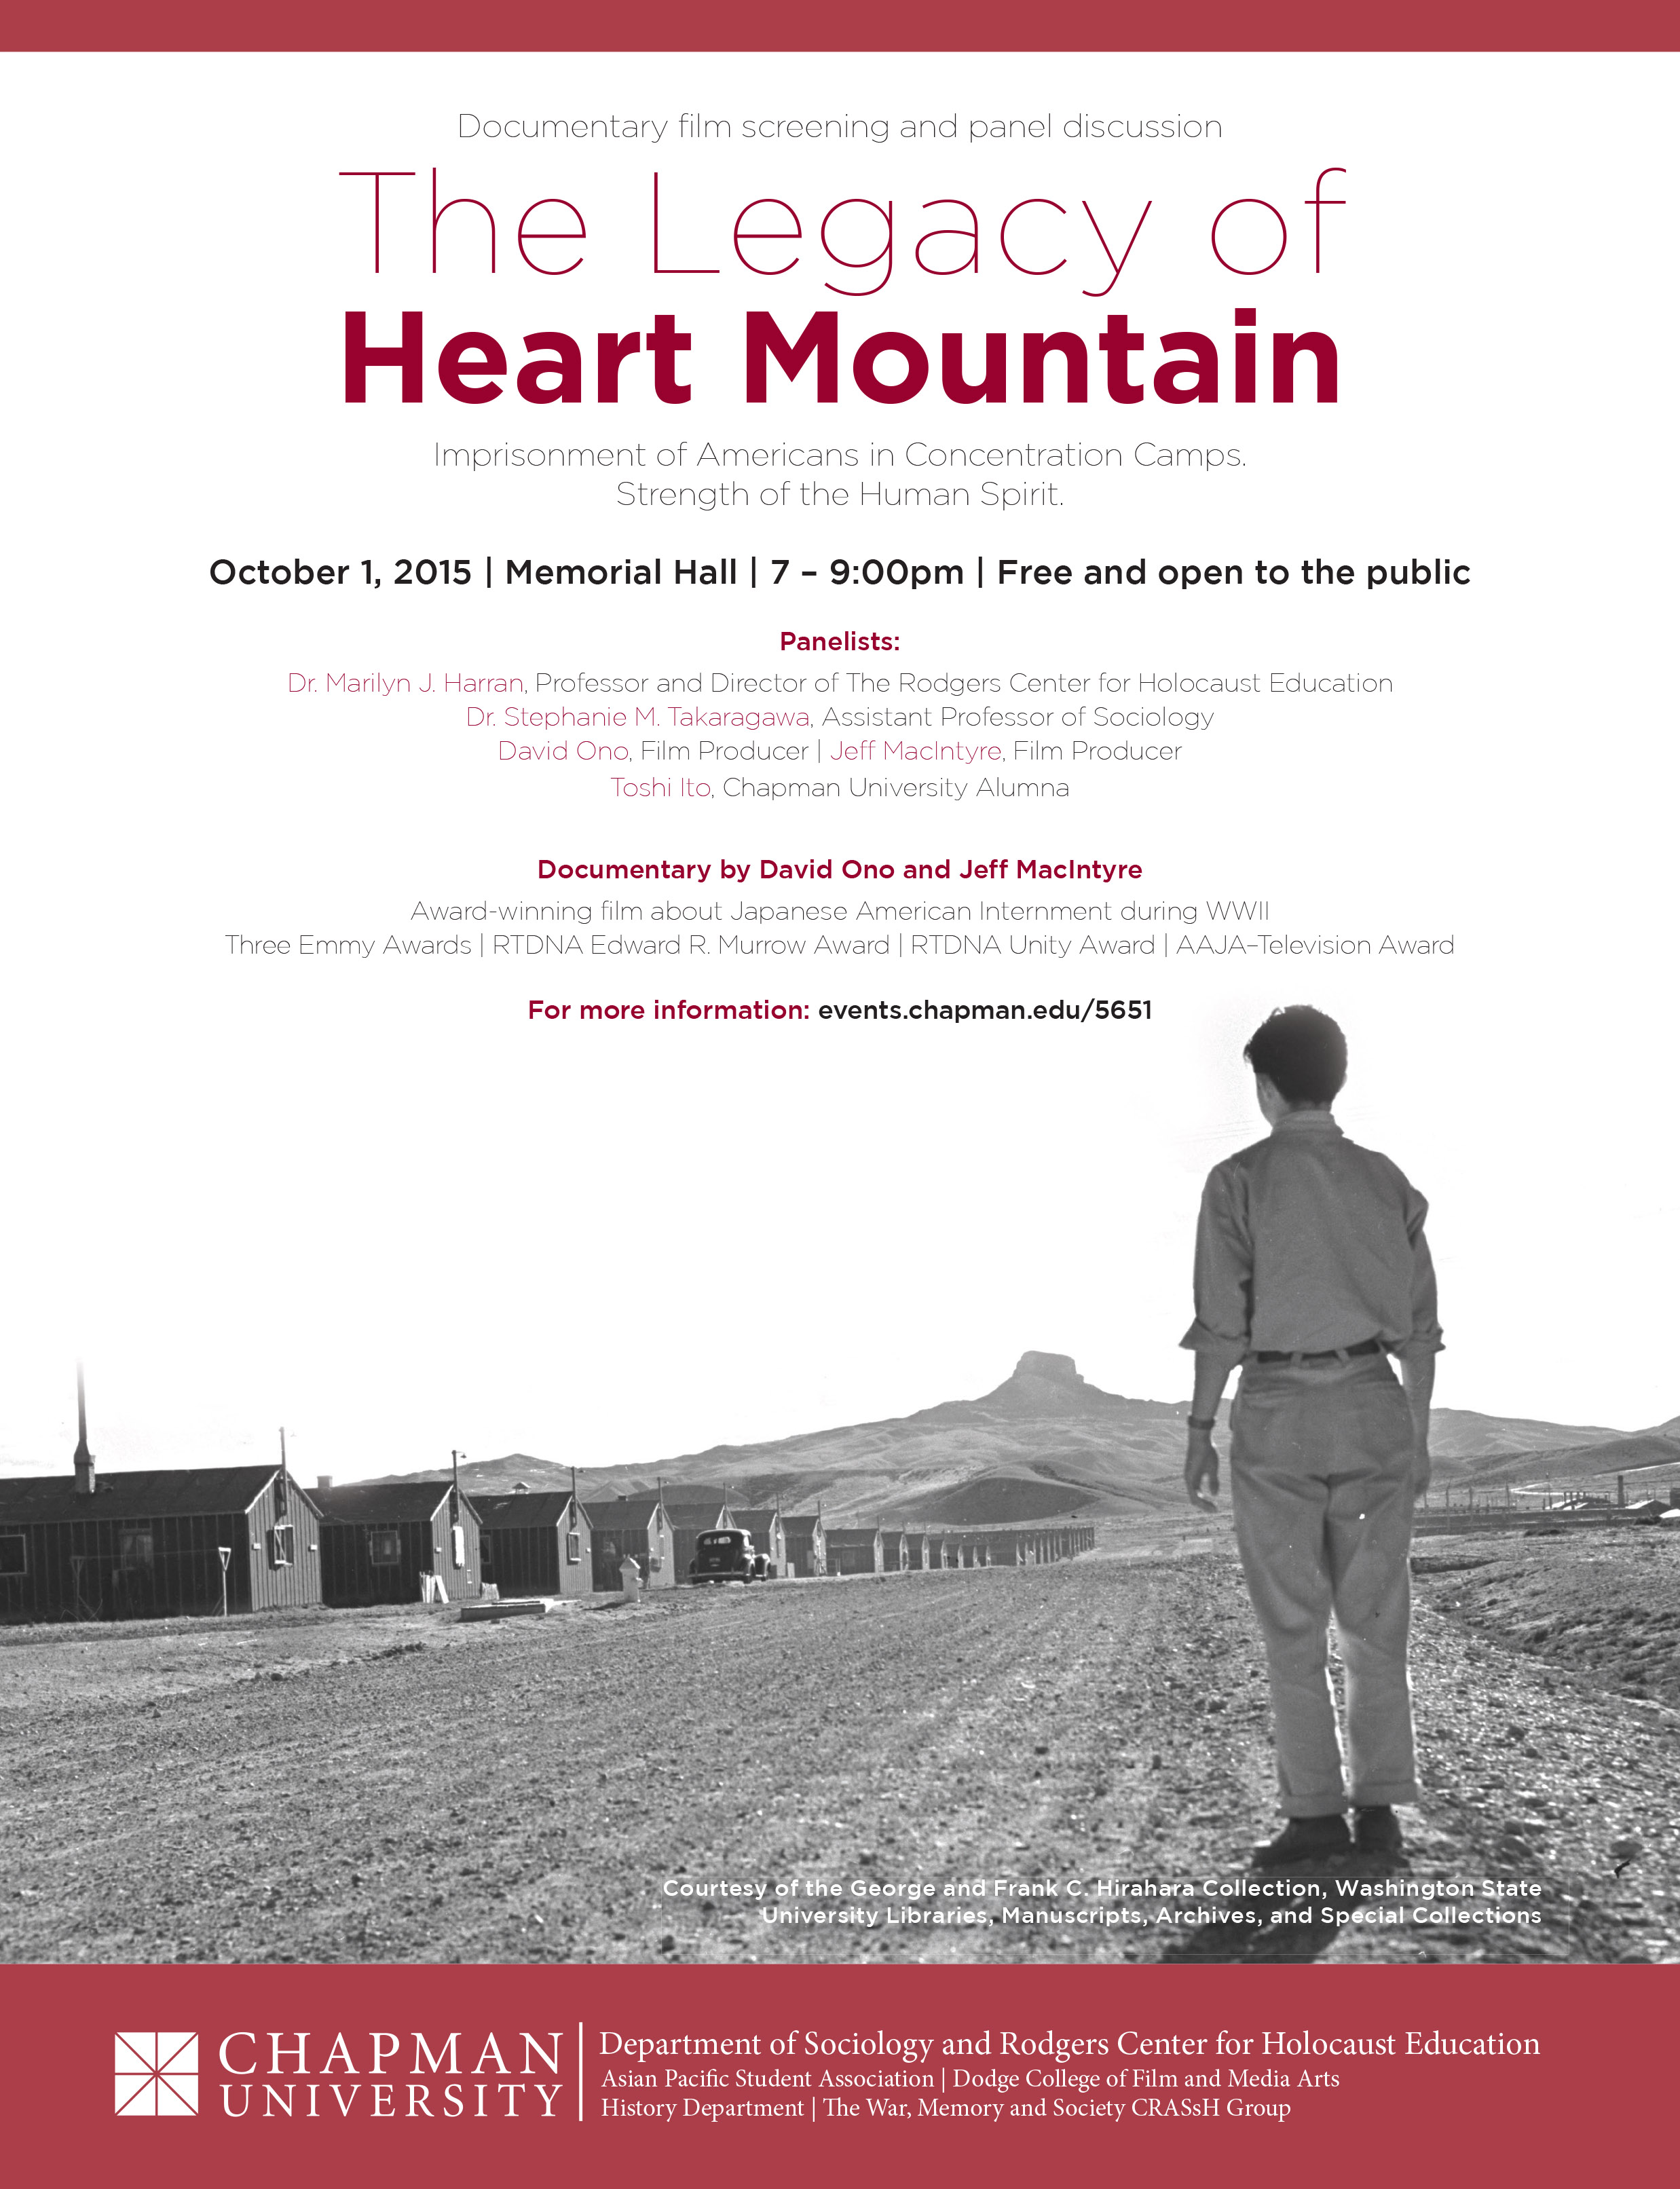 Flyer for Heart Mountain